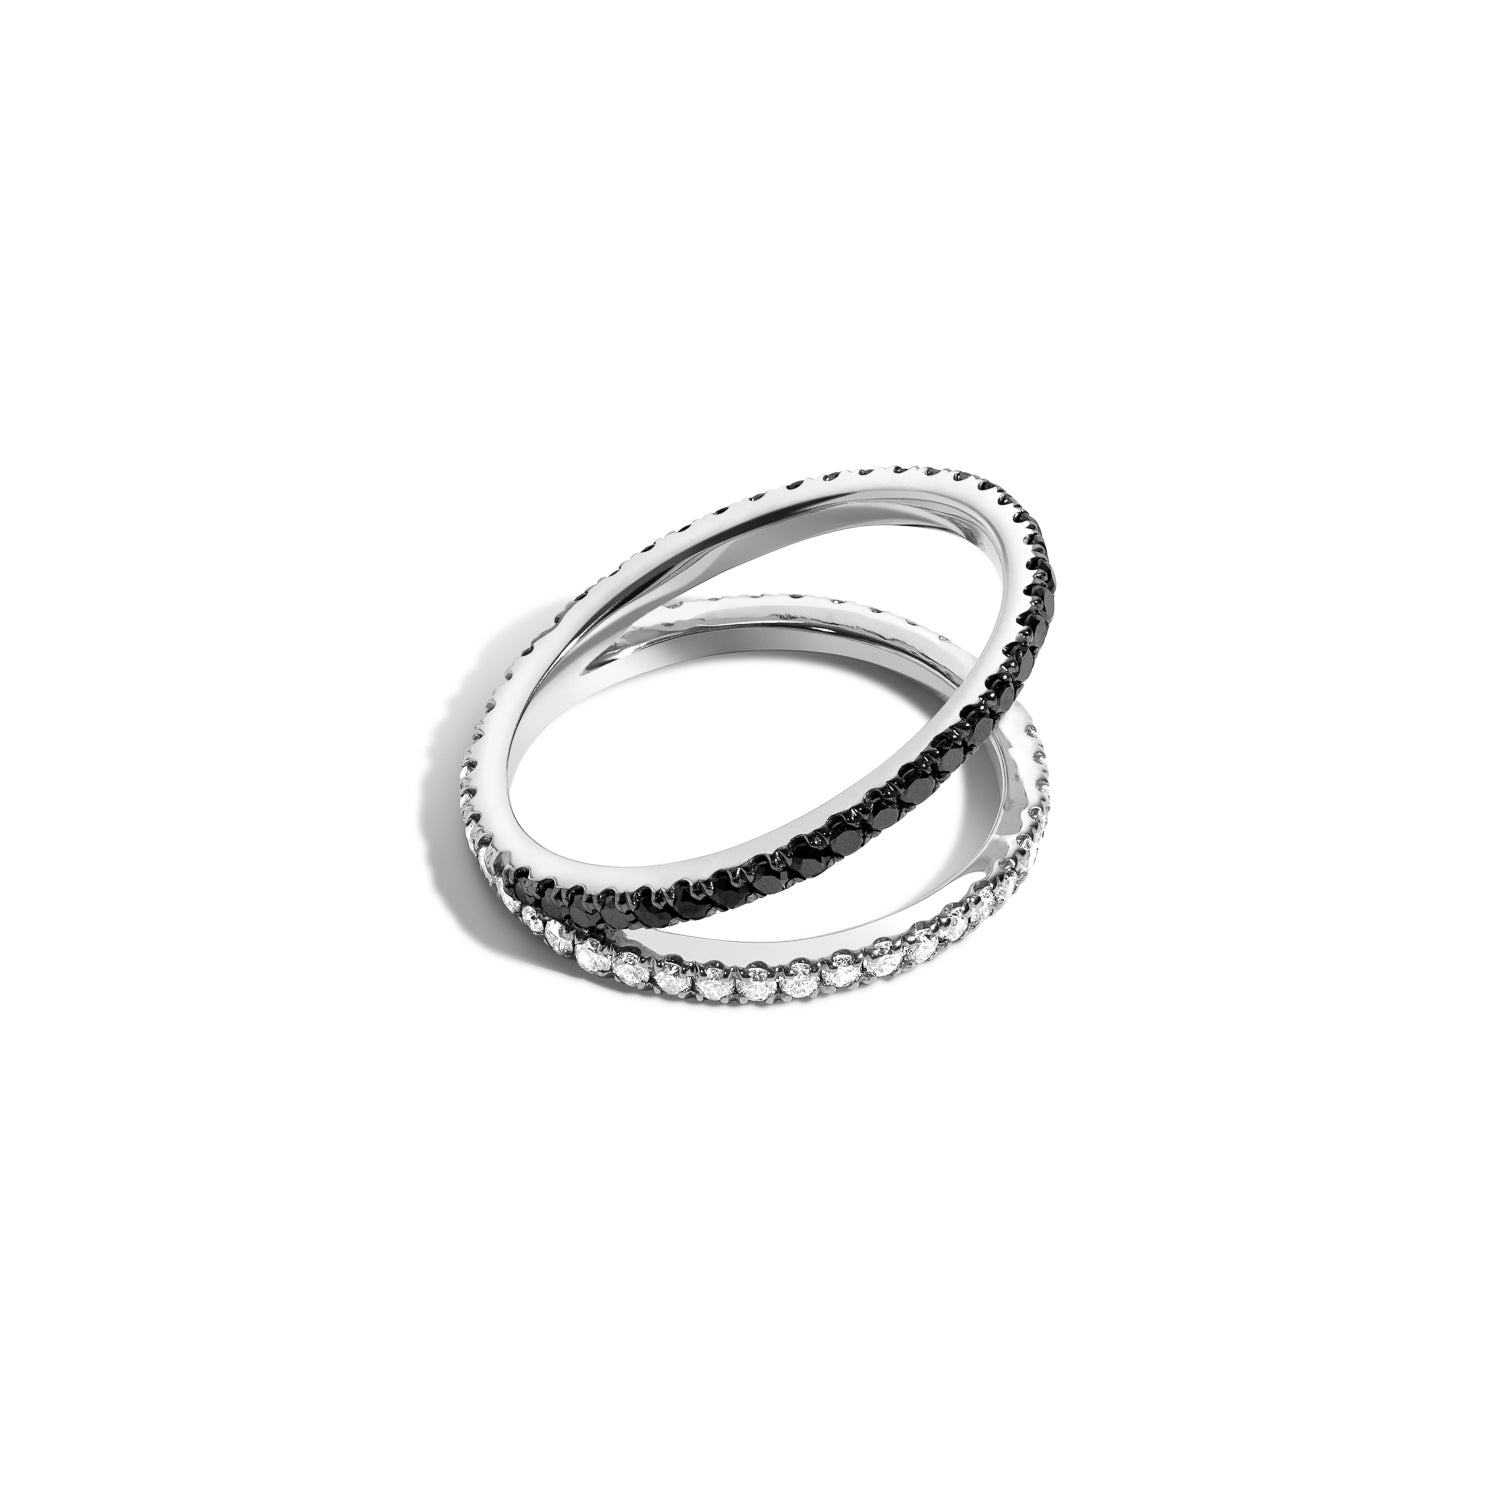 Shahla karimi 14k gold love black diamond and white diamond split v ring